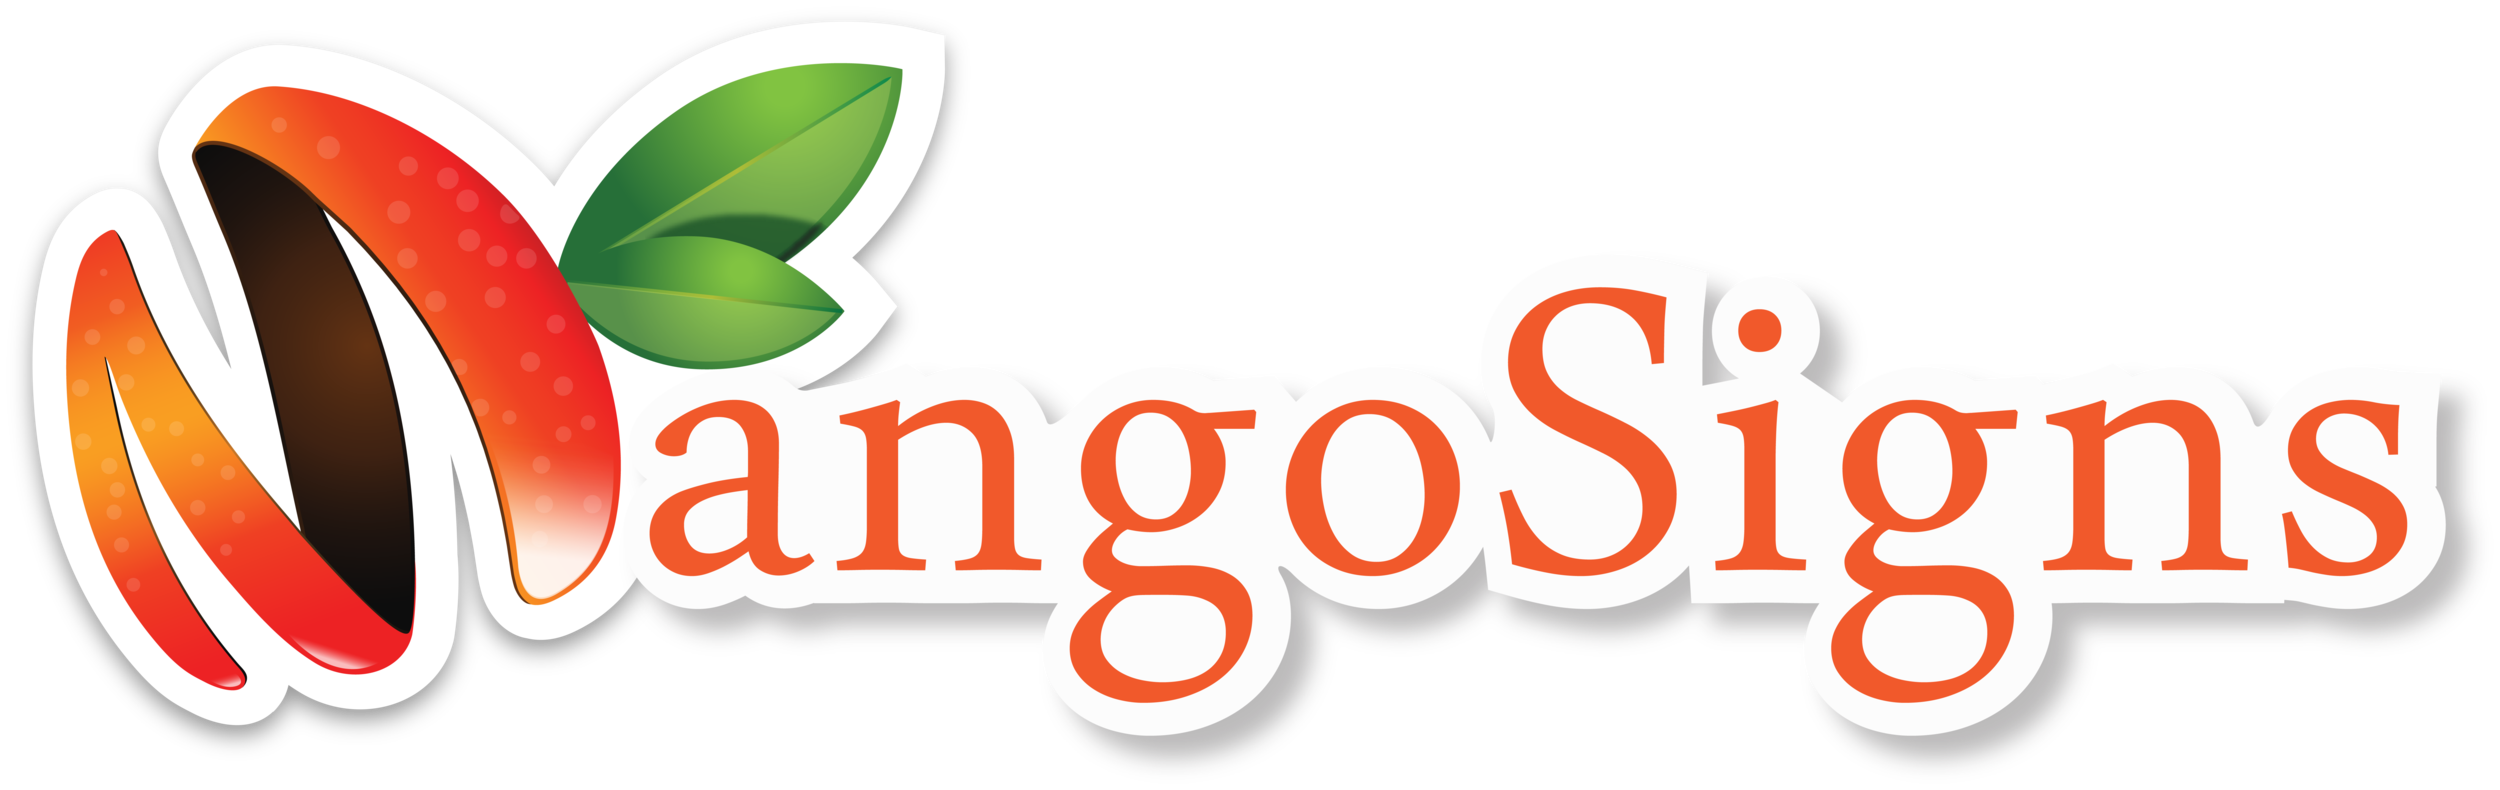 MangoSigns(HQ png) (002).png